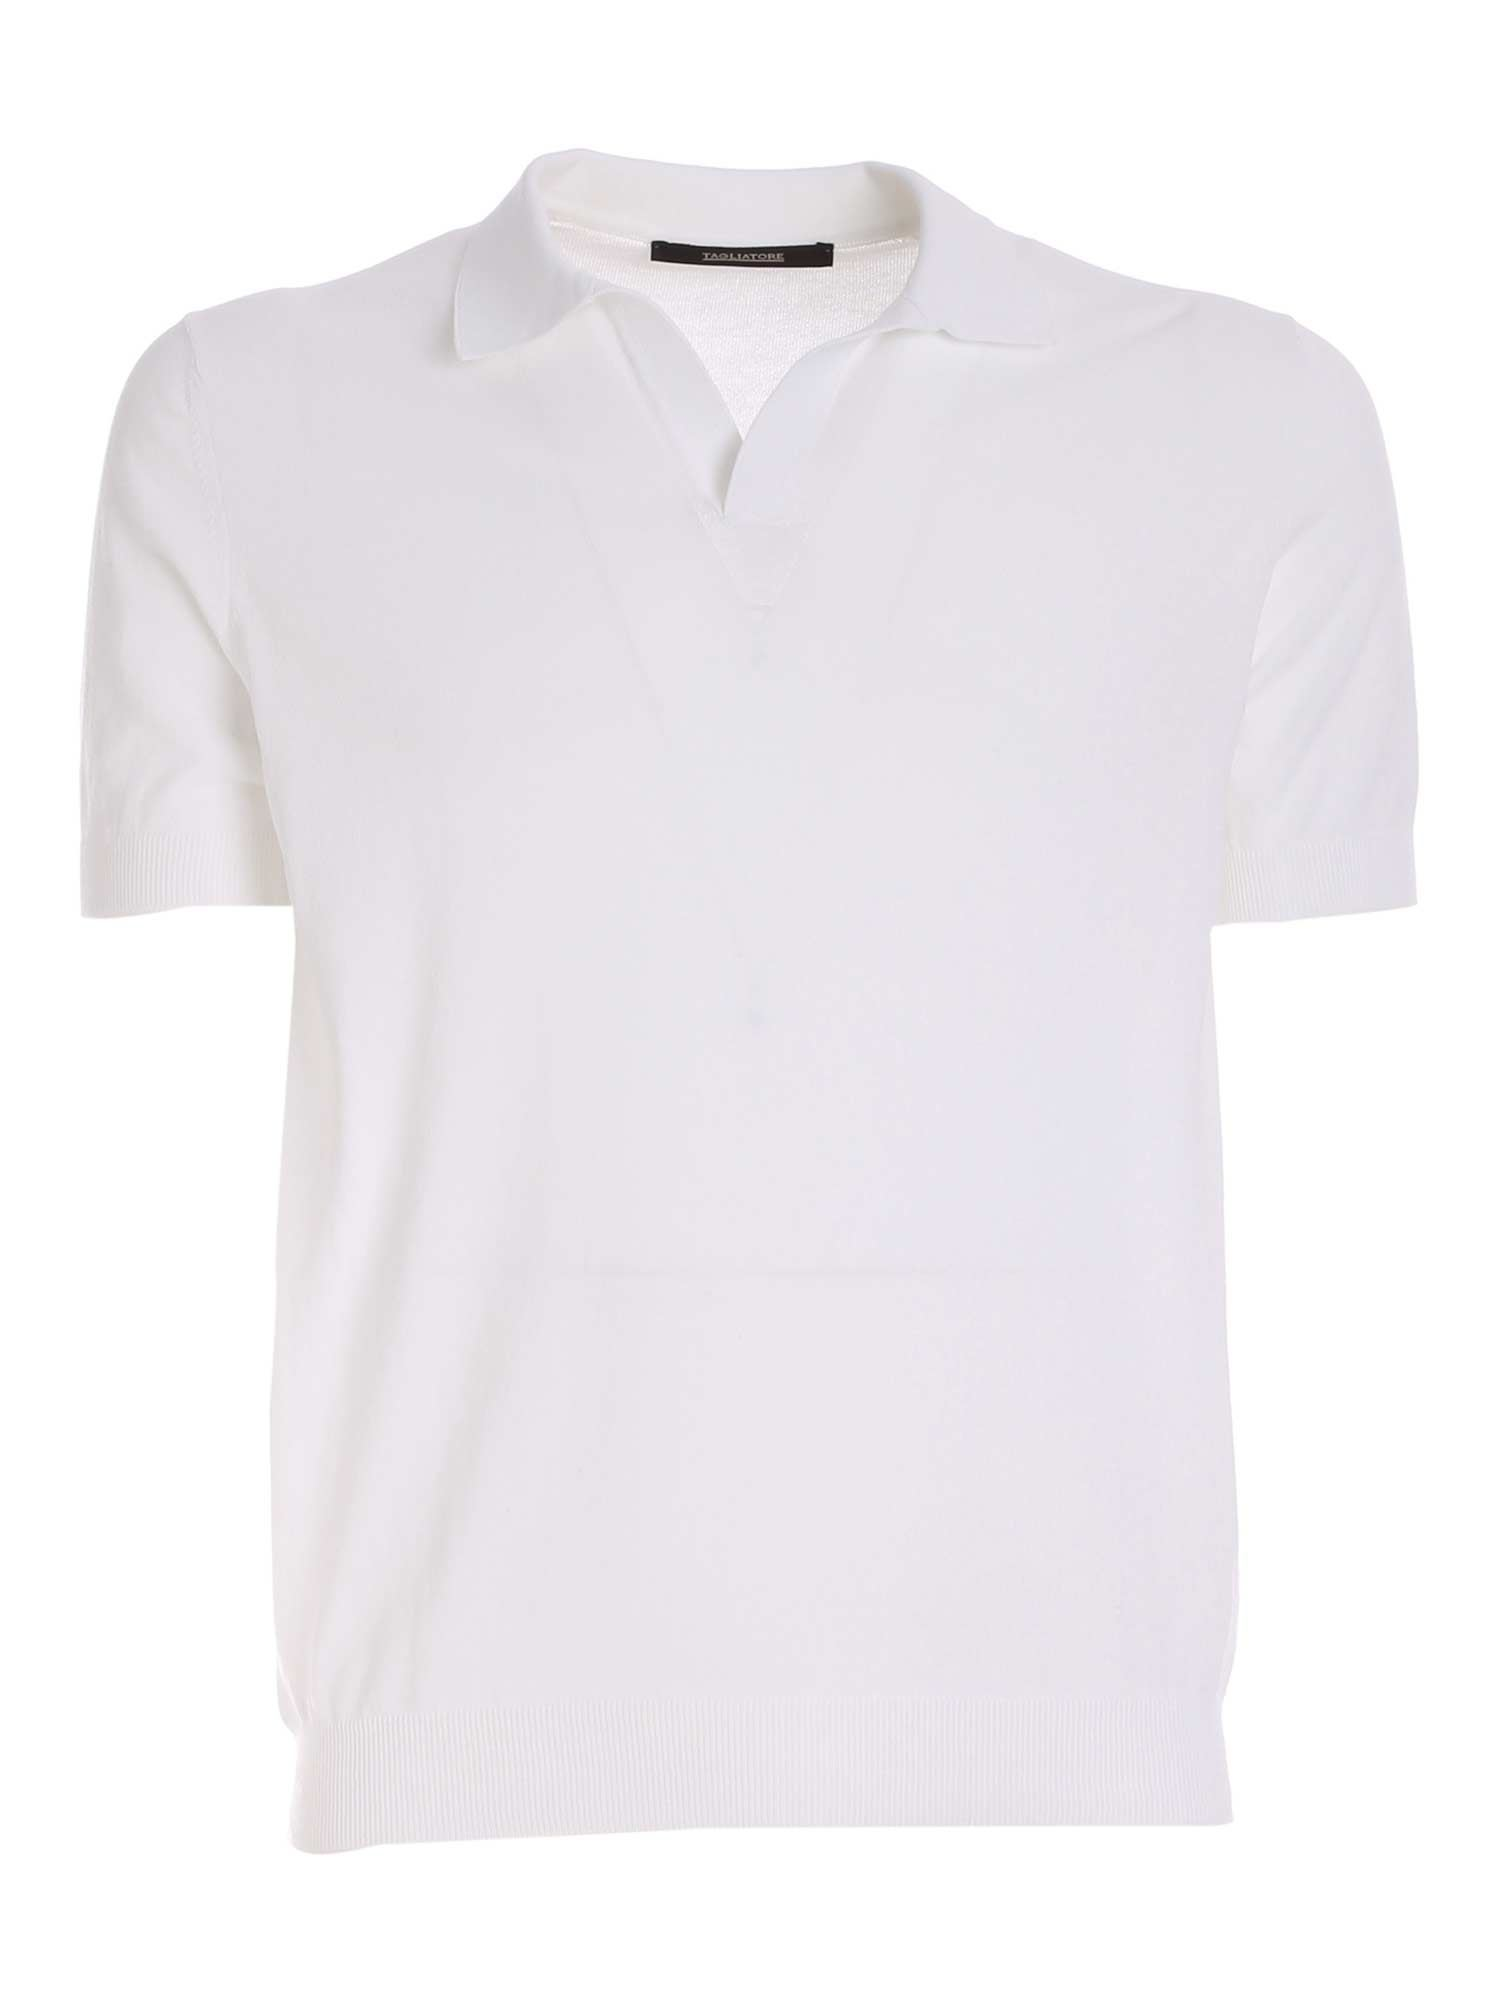 Tagliatore RIBBED HEM POLO SHIRT IN WHITE